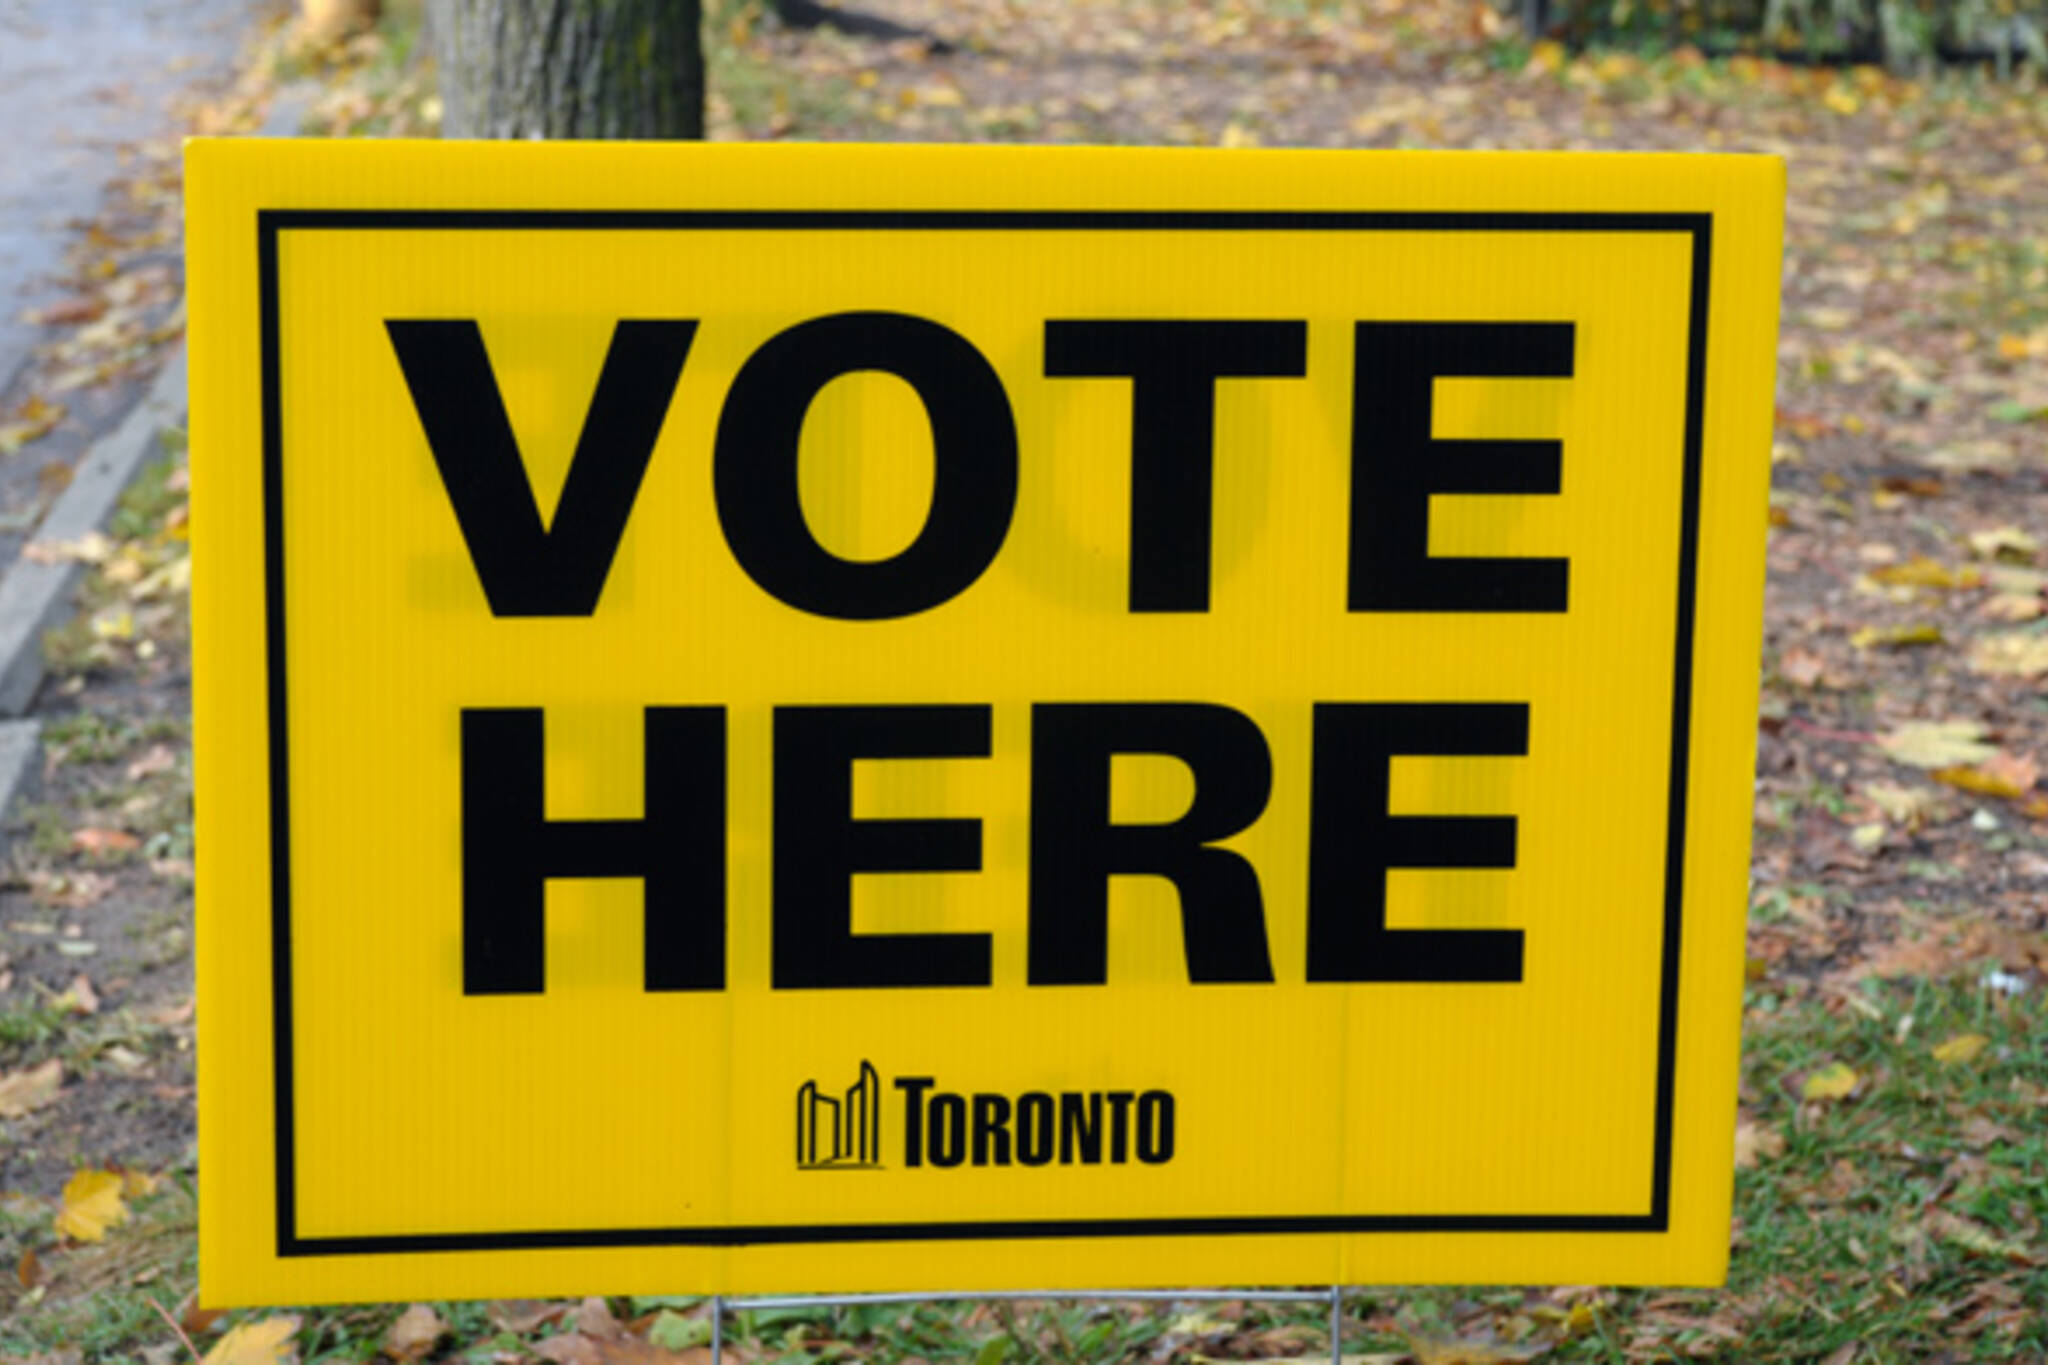 Toronto Election 2010 Results